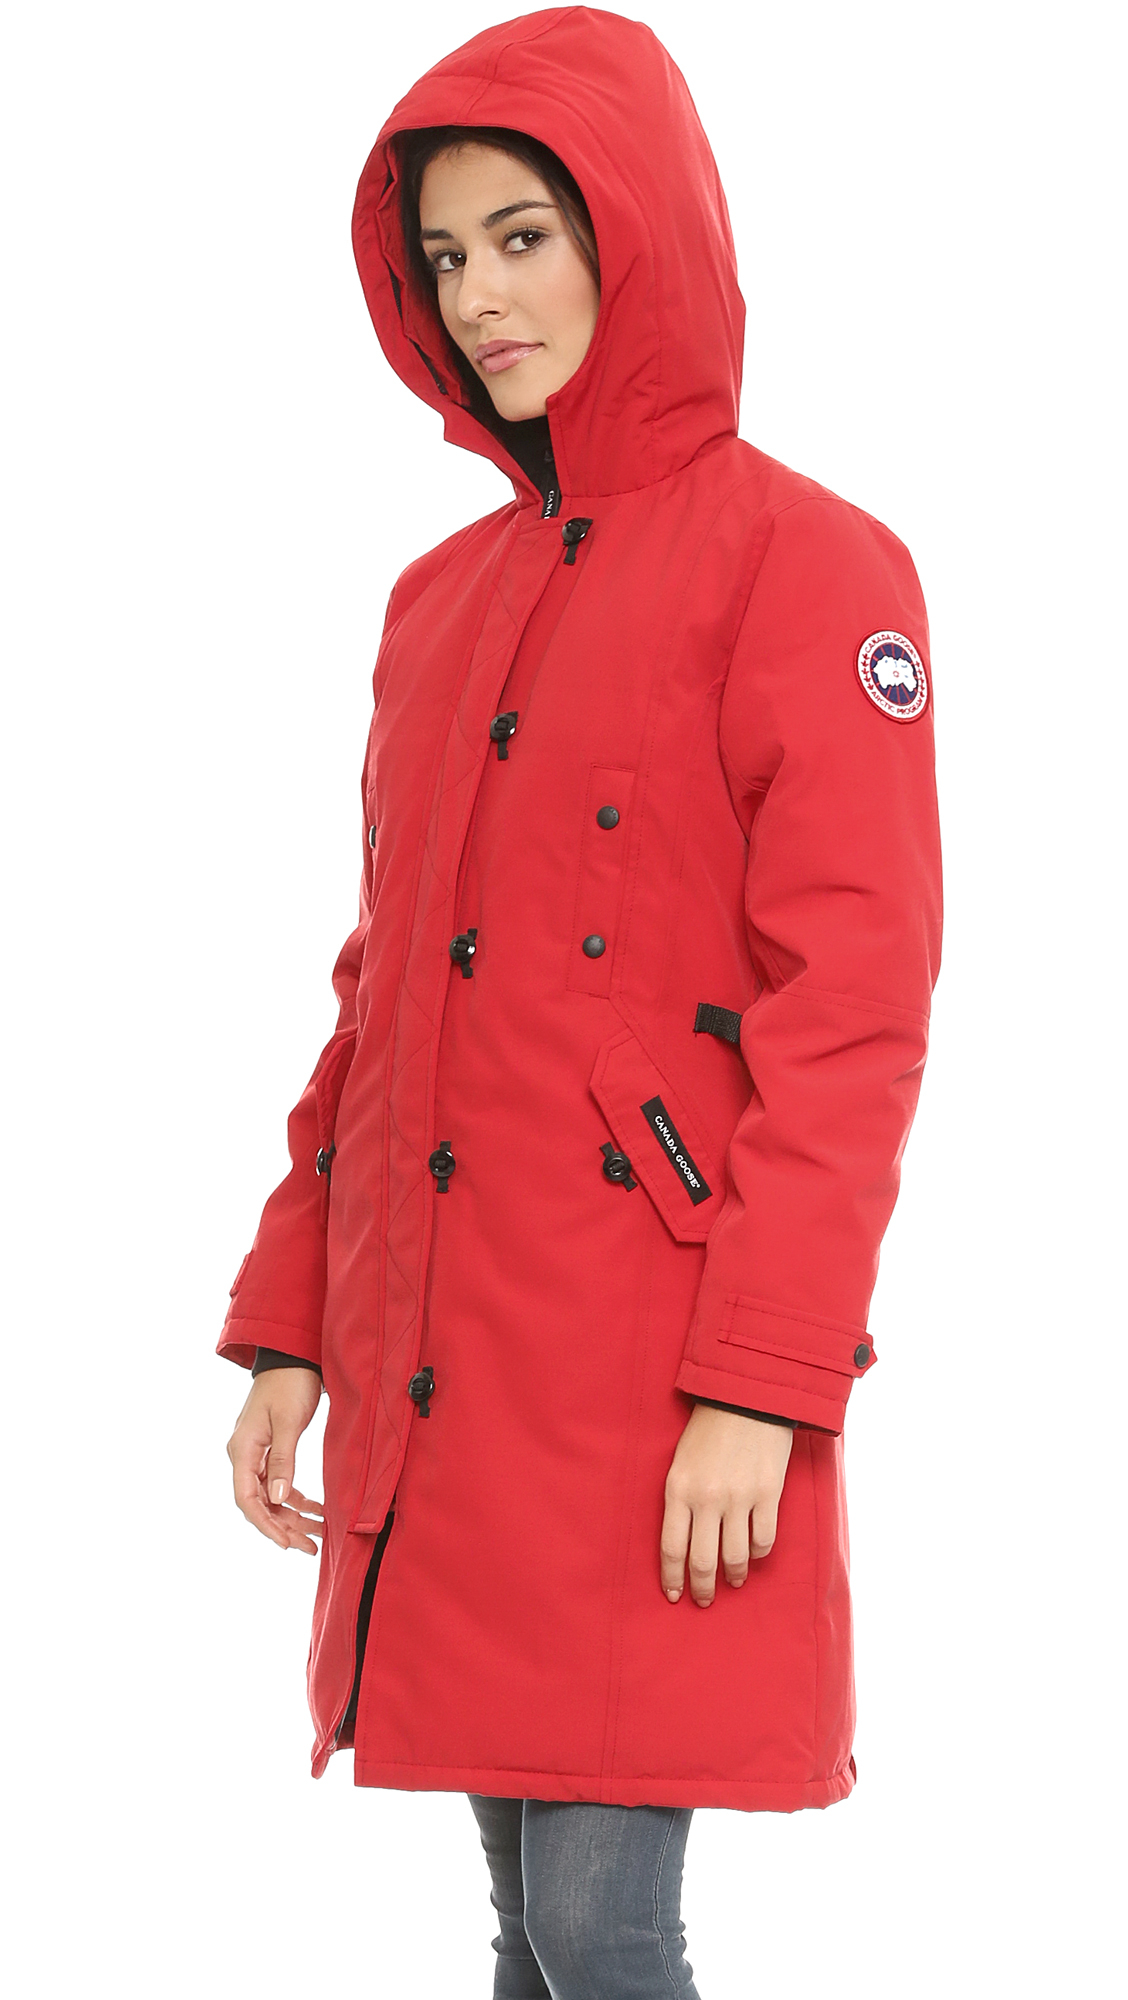 canada goose kensington parka red in red lyst rh lyst co uk